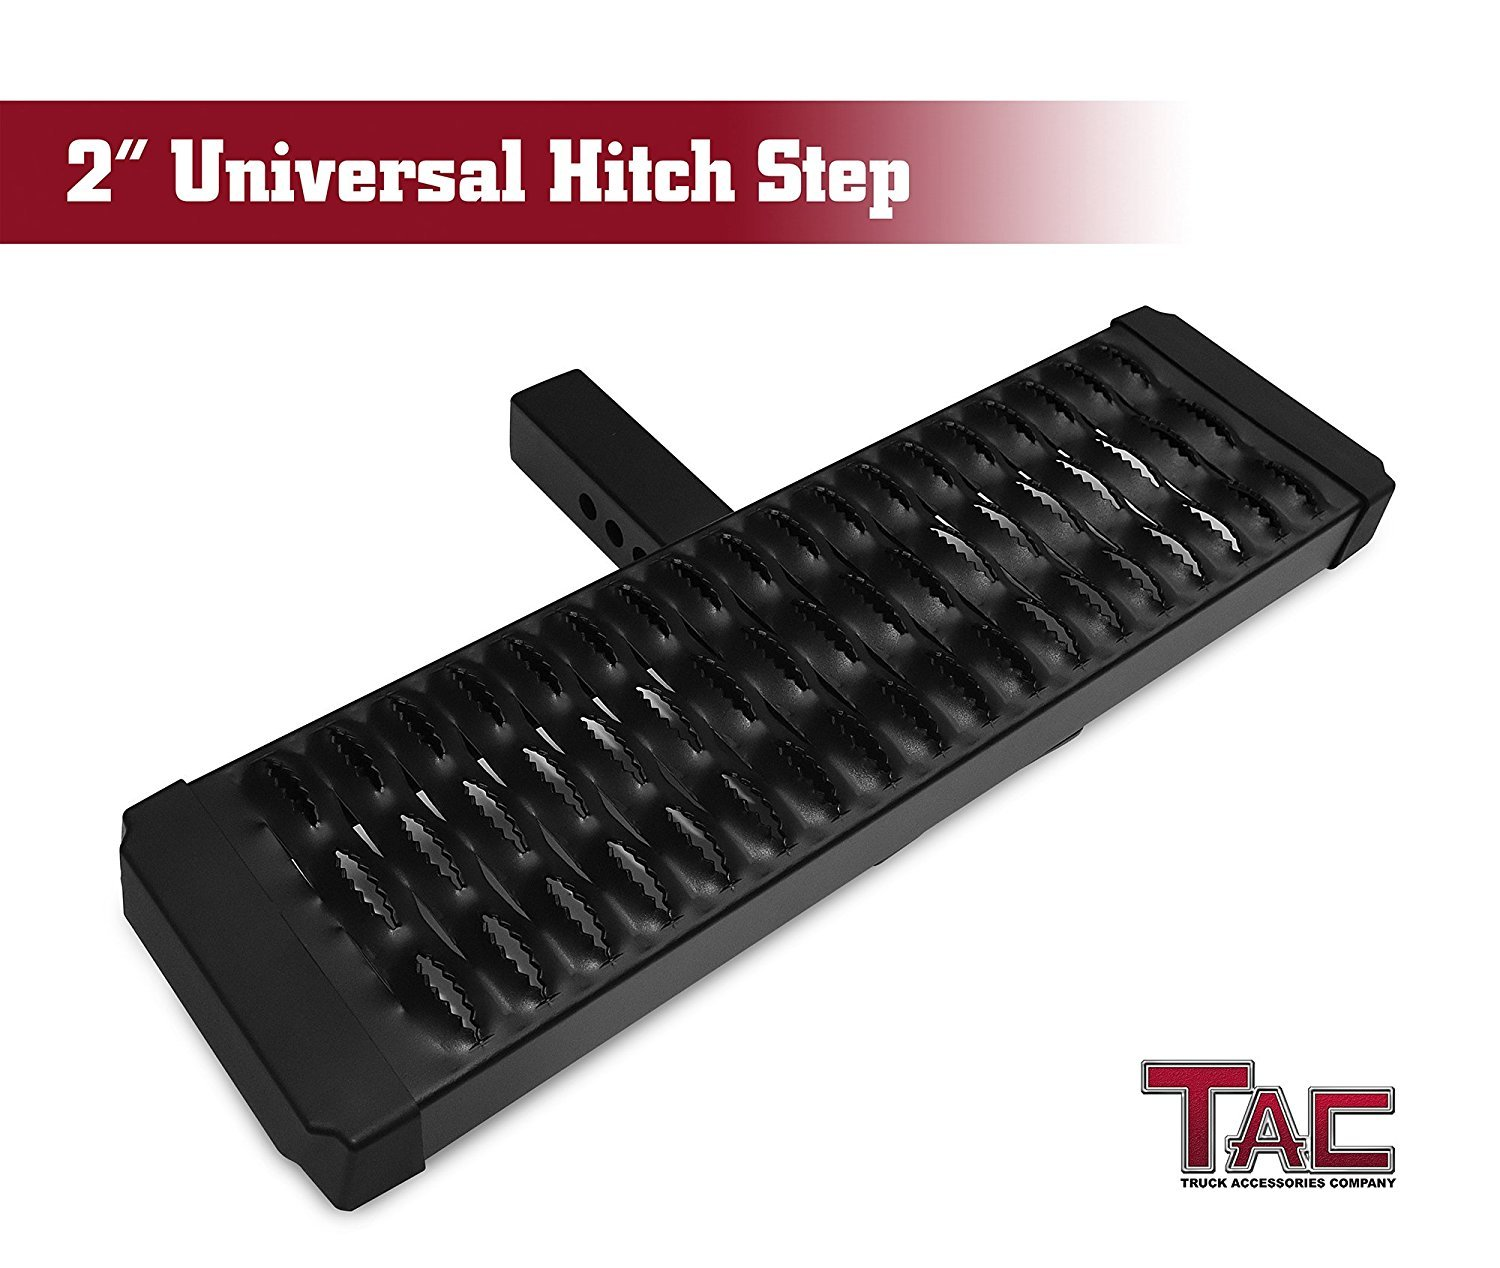 TAC Aluminum Hitch Step Universal Fit 2'' Rear Hitch Receivers with No Drop by TAC TRUCK ACCESSORIES COMPANY